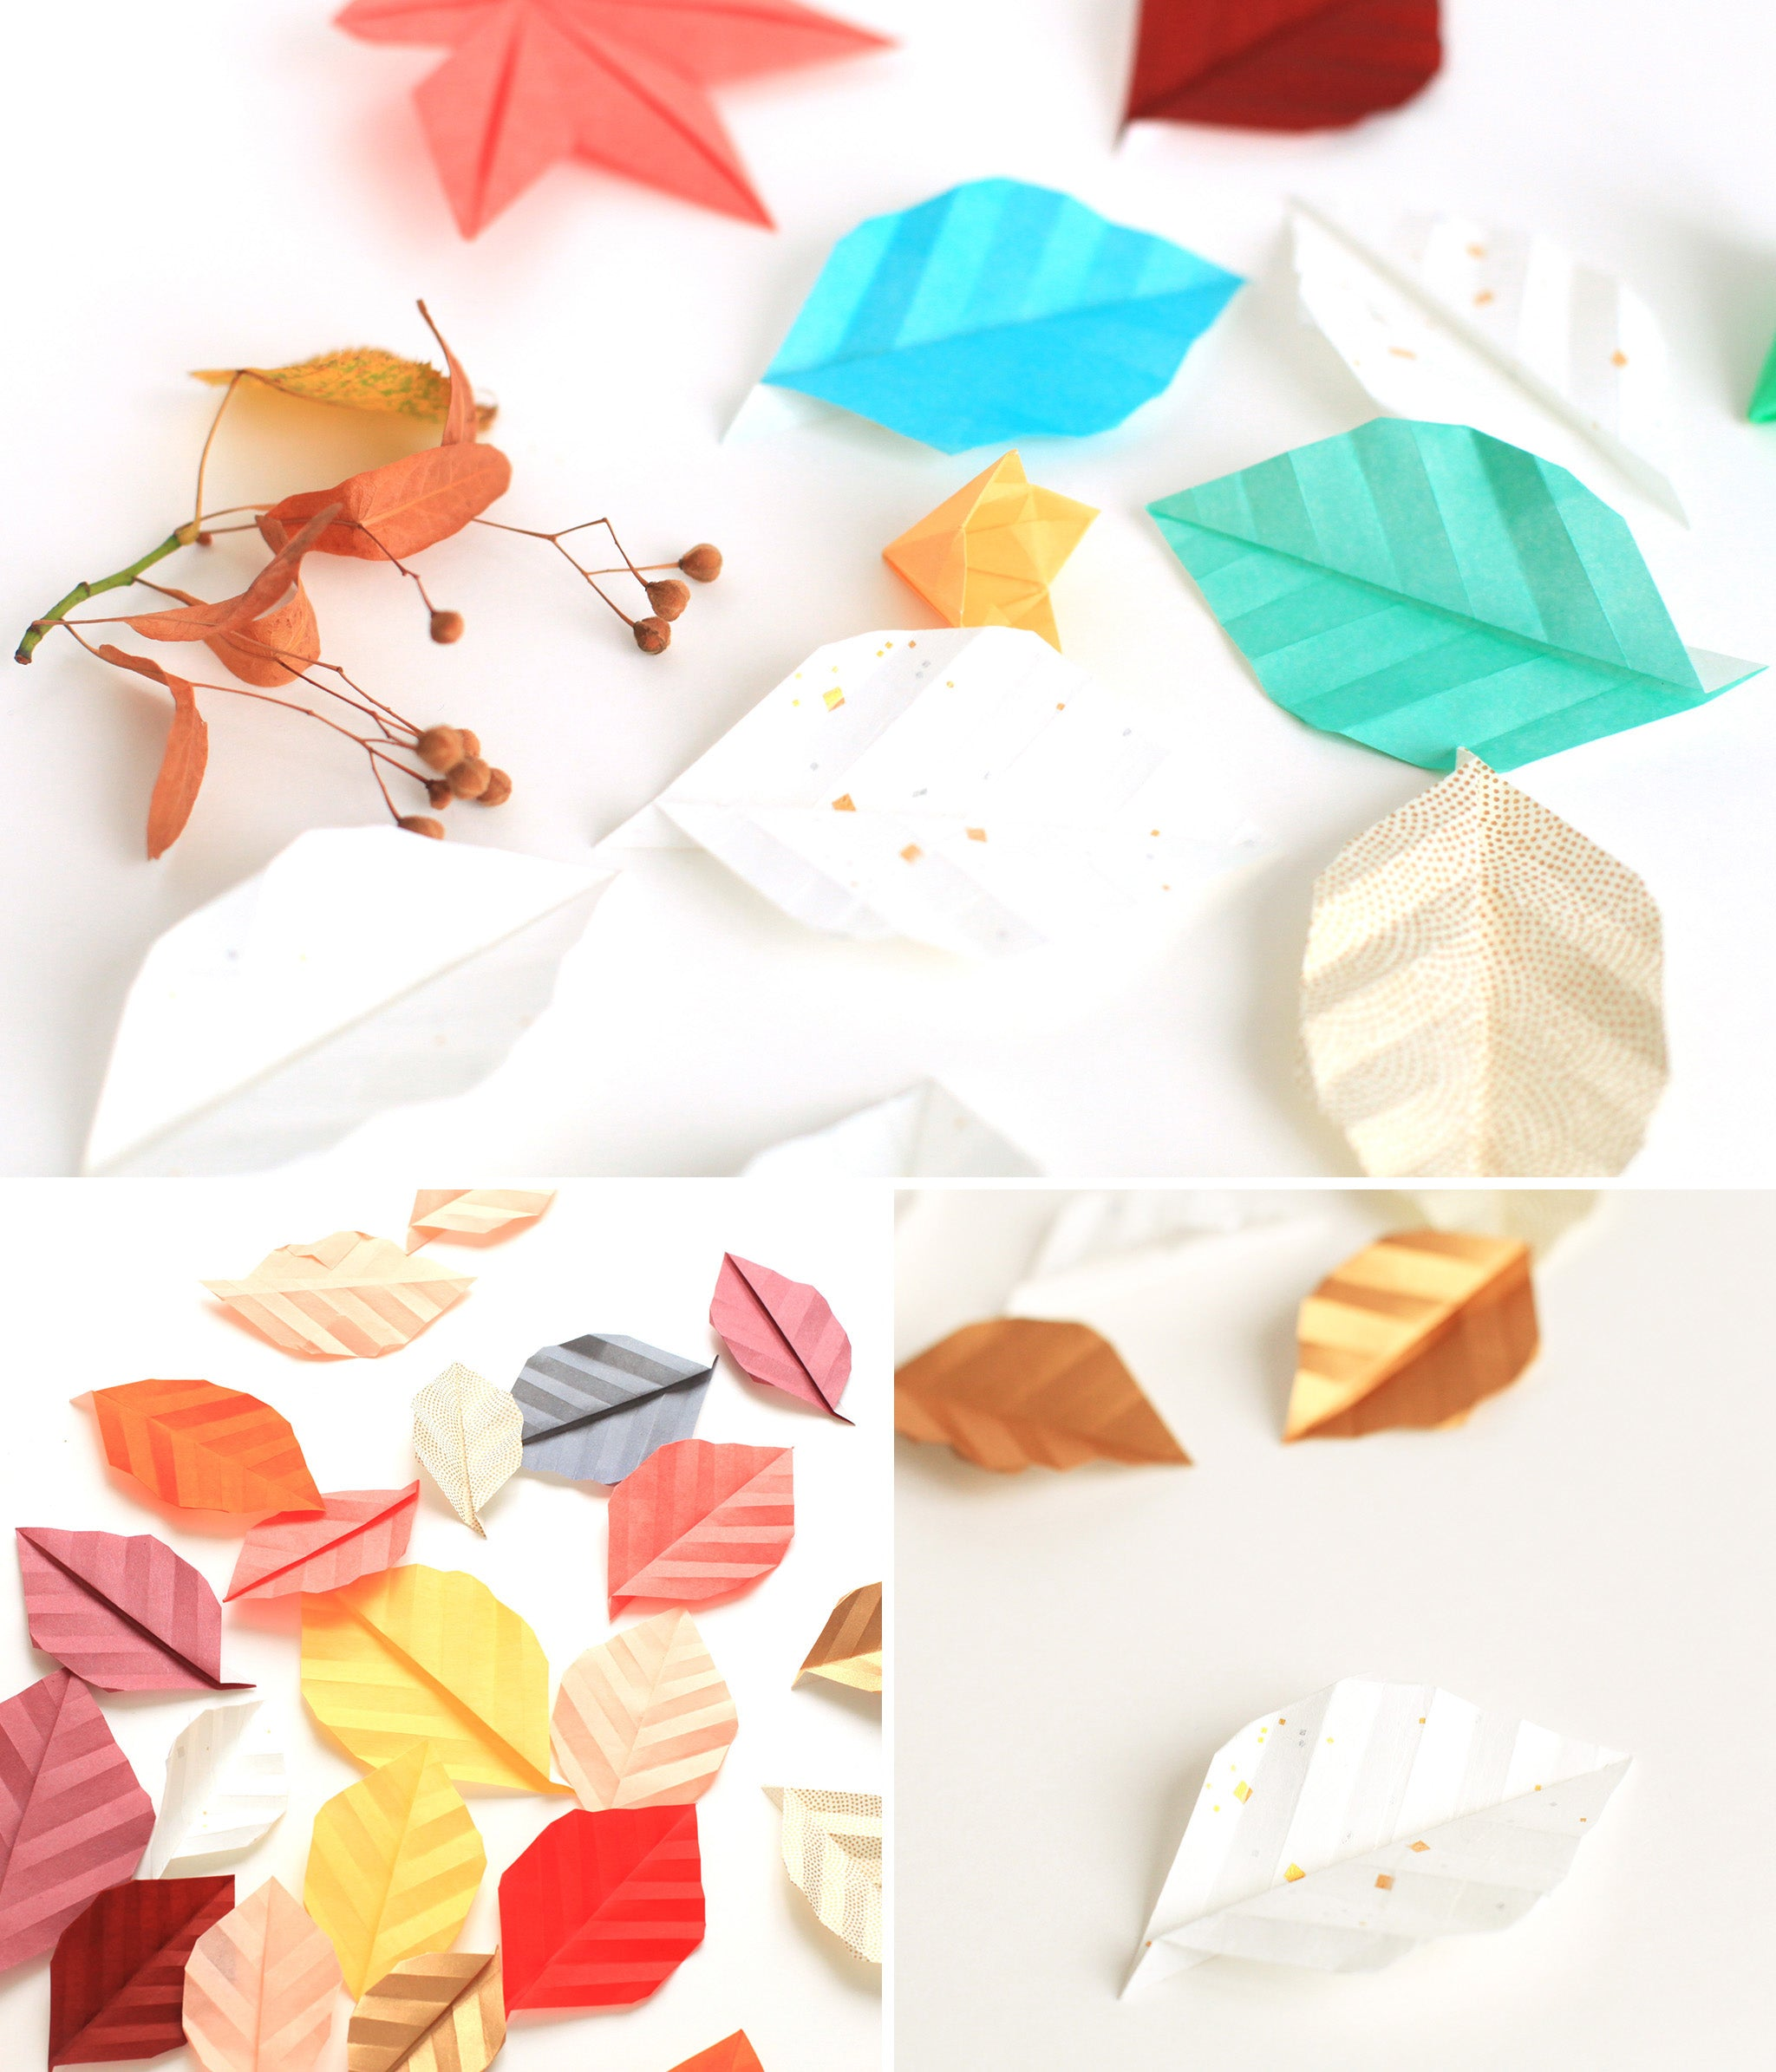 article-tuto-feuille-origami-ambiance-2